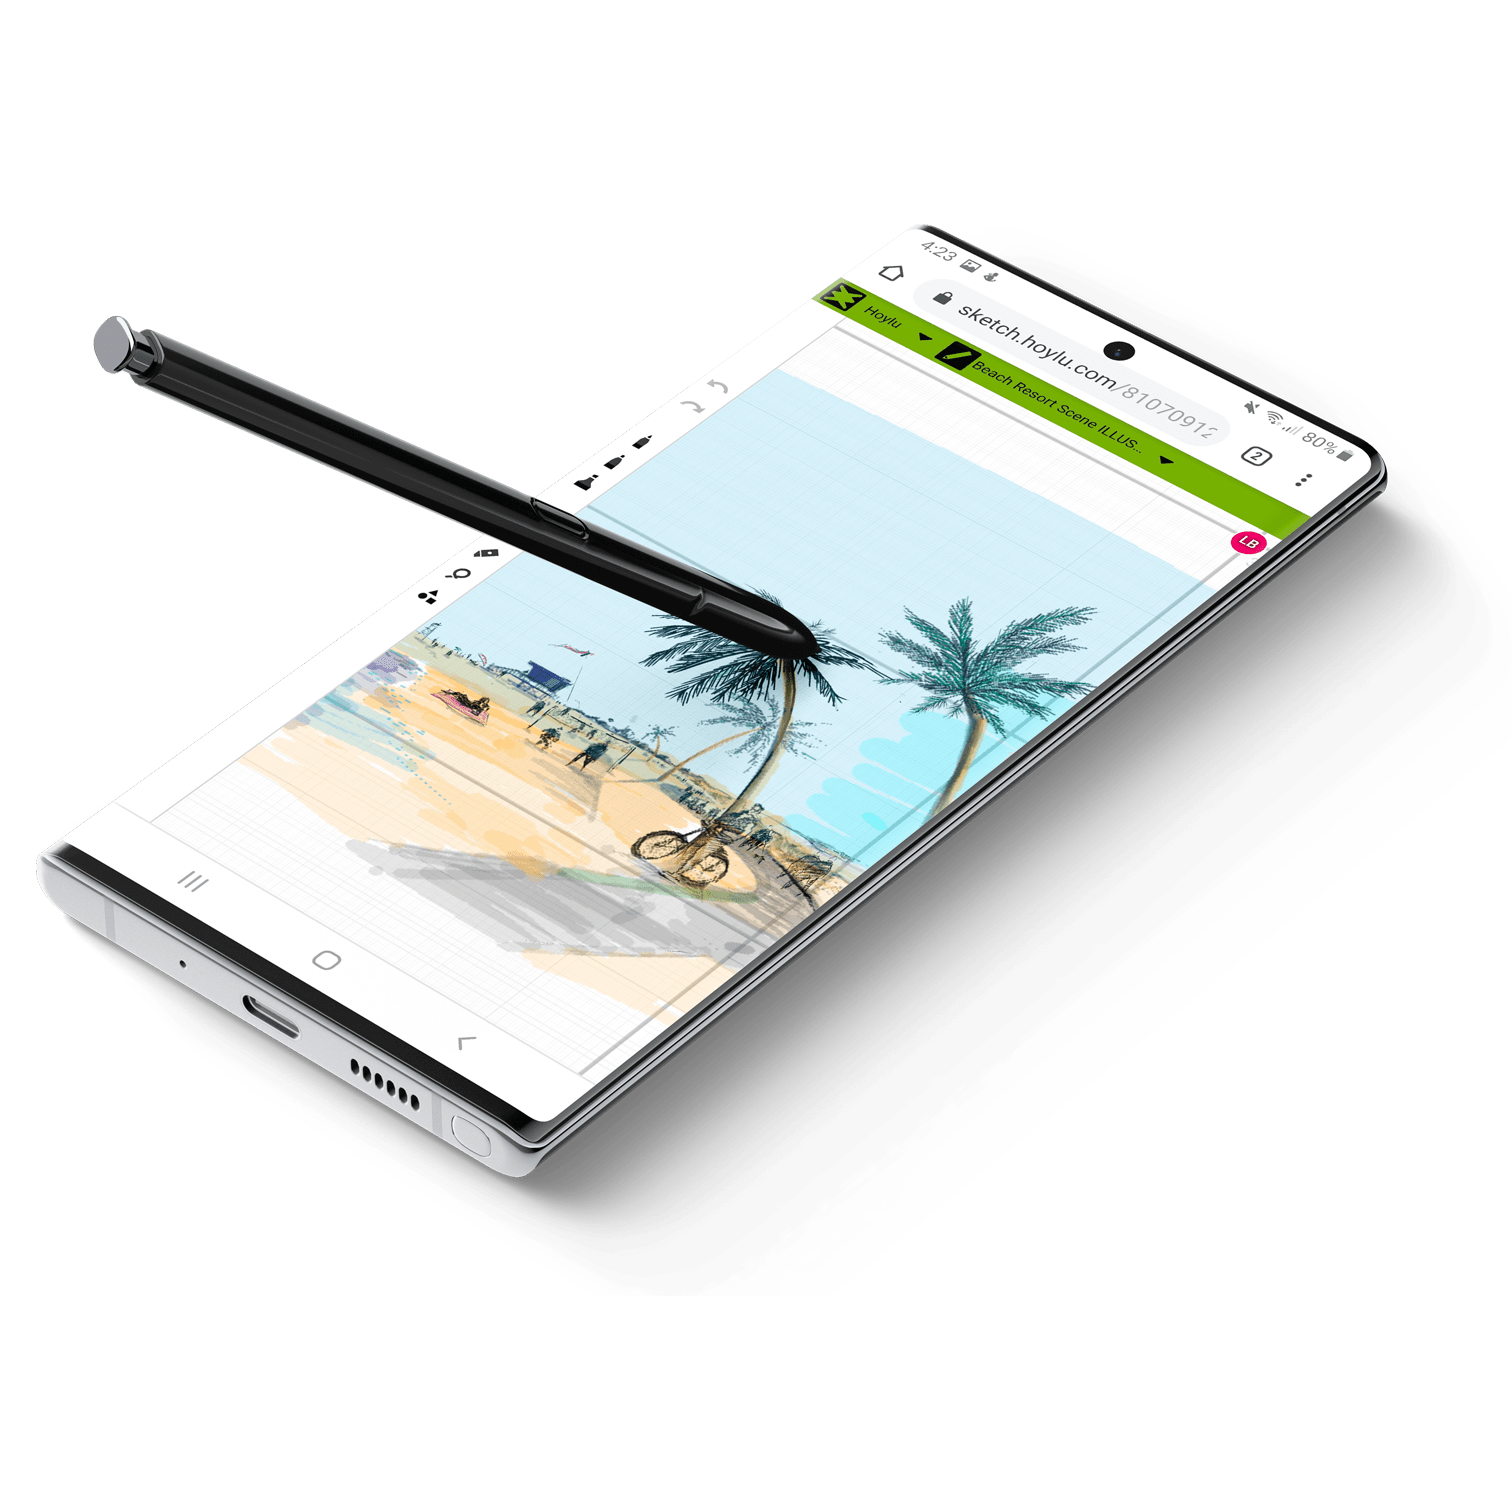 Hoylu Connecated Workspaces™ application displayed on pen-enabled smartphone